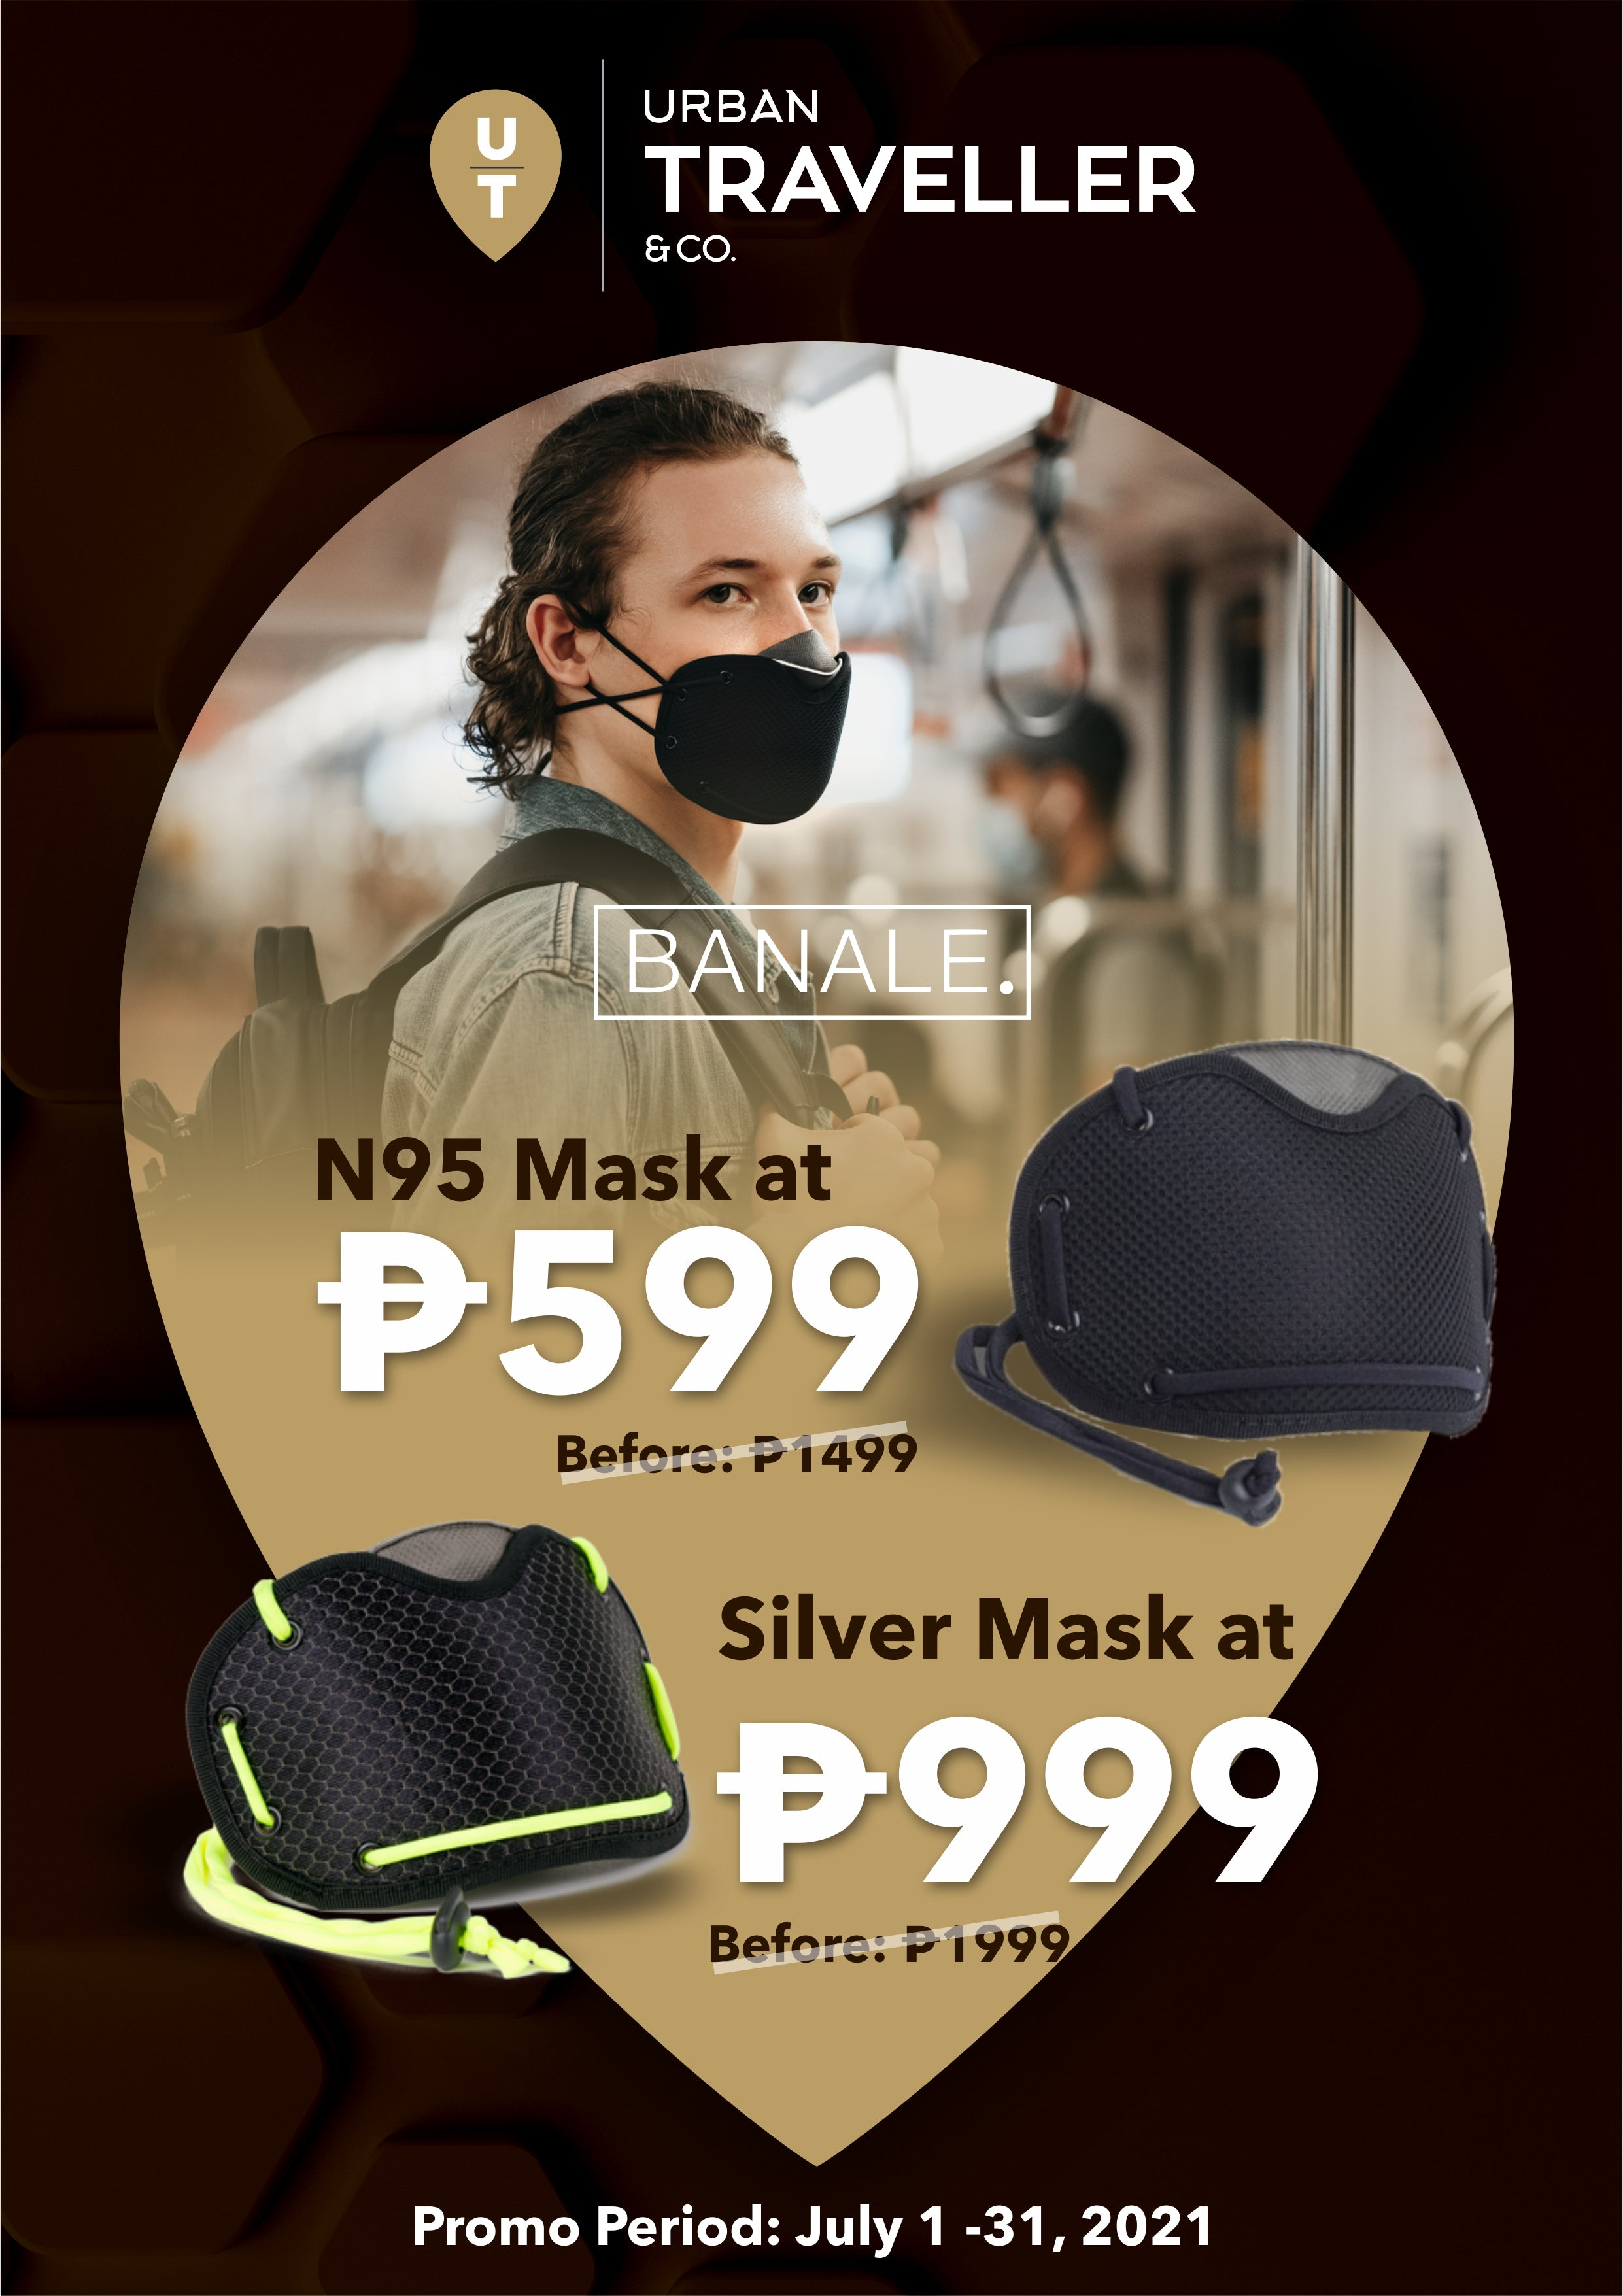 Urban Traveller and Co Mid Year Sale Banale Mask